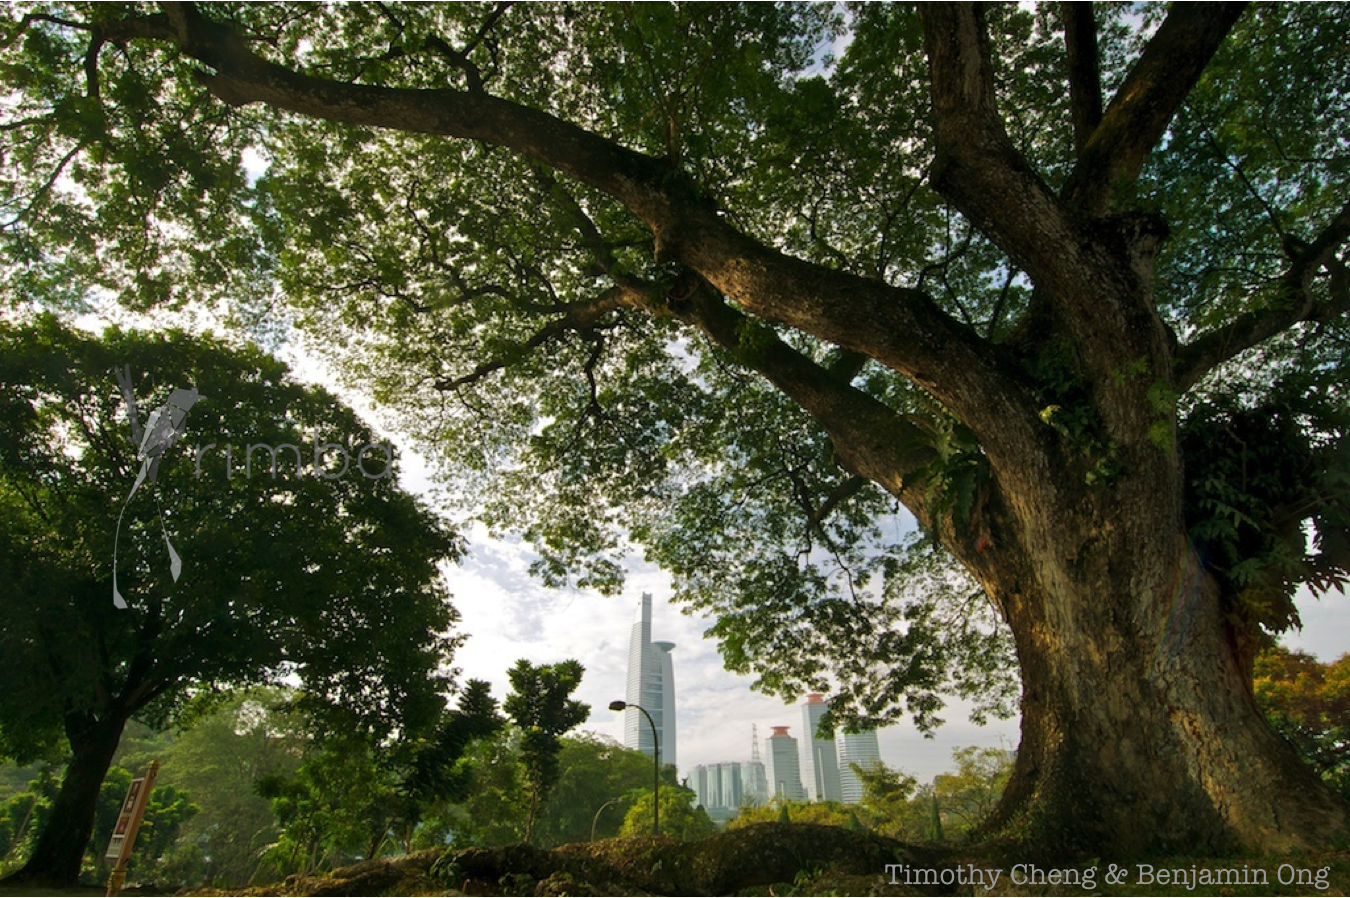 The Value of Biodiversity to Cities